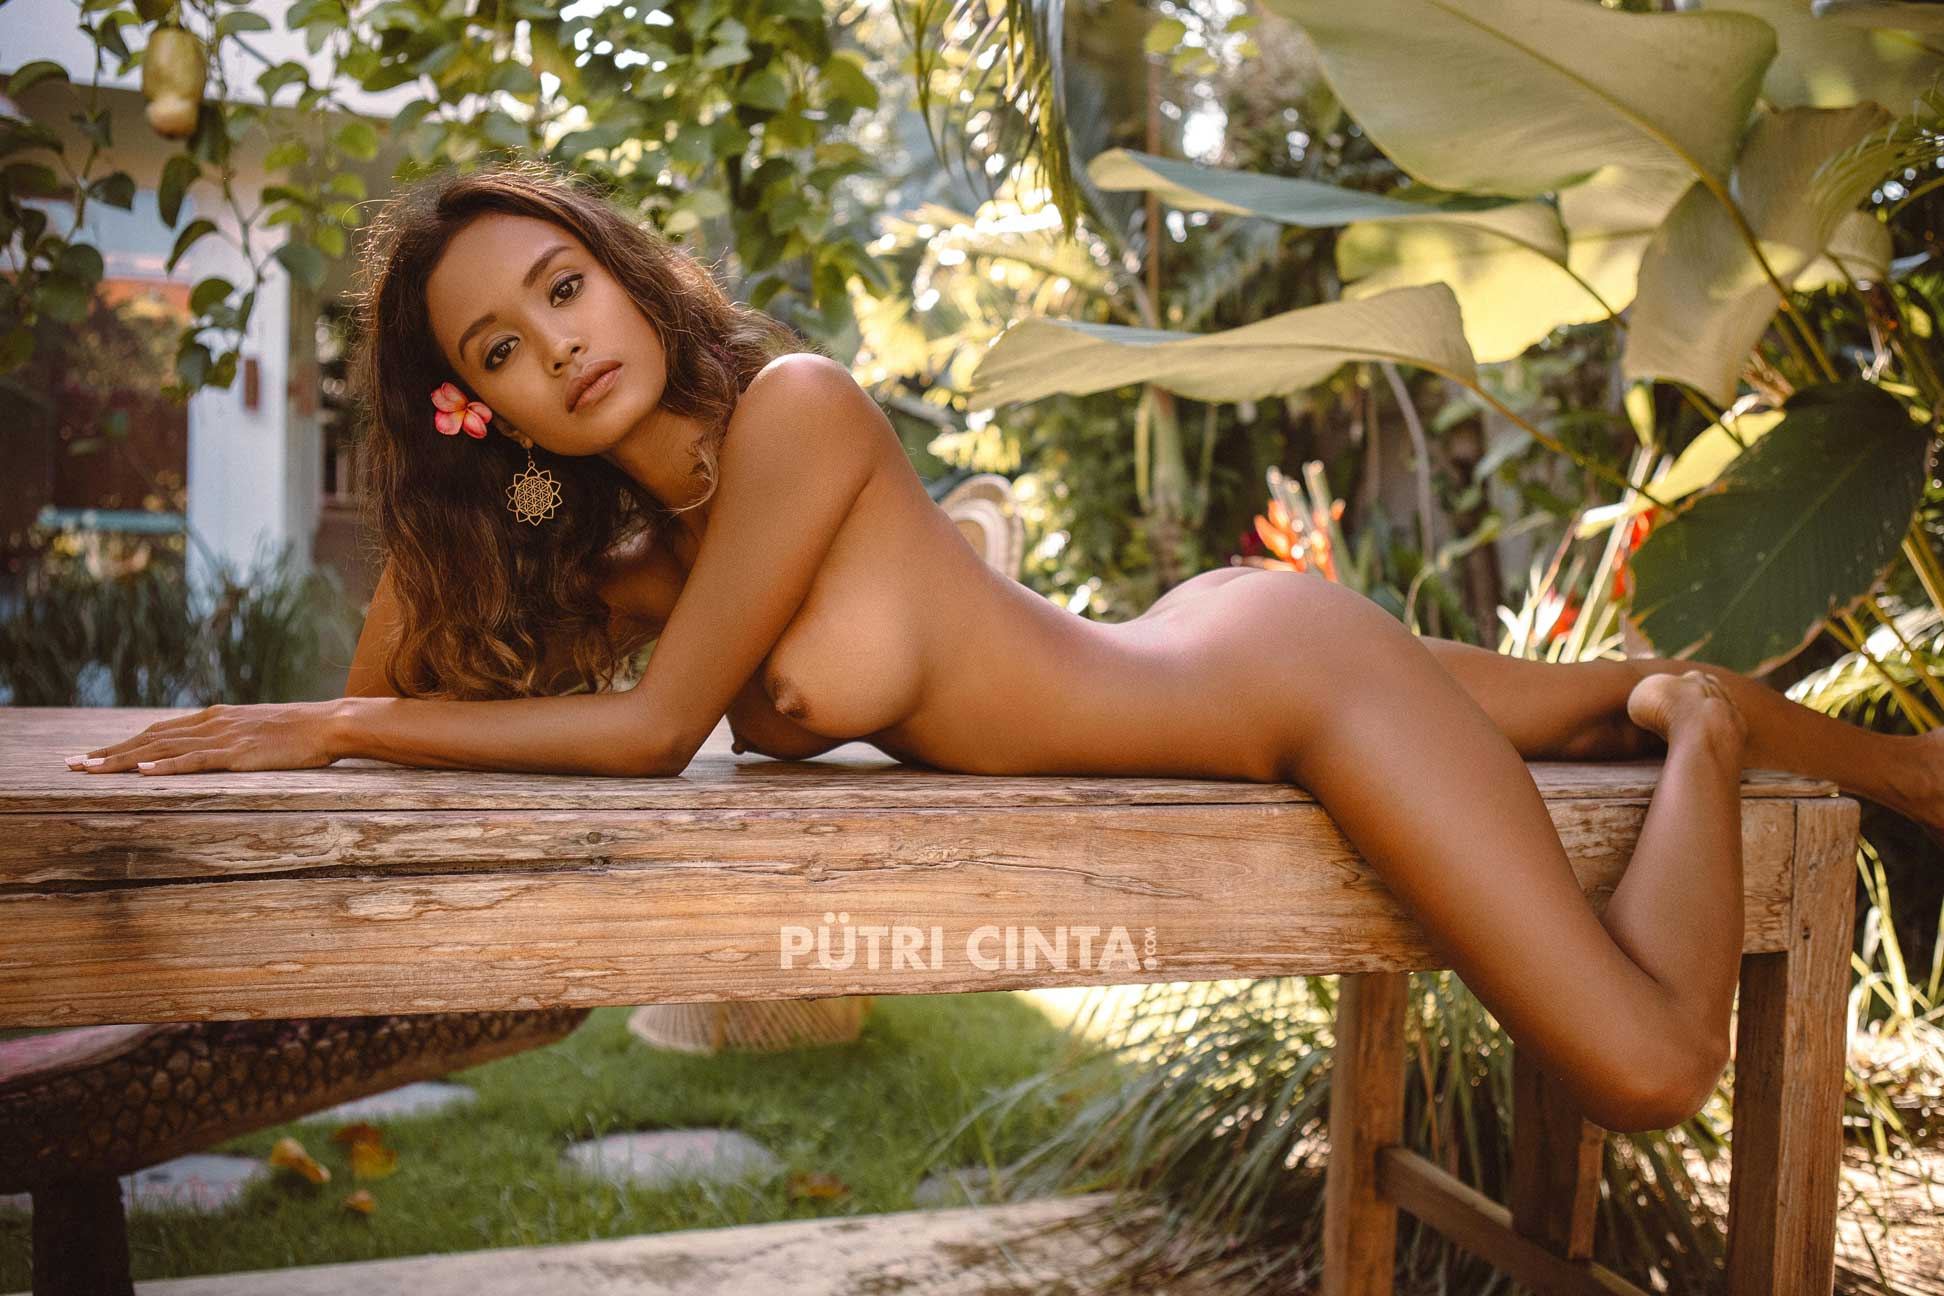 PUTRI-CINTA-010-SUNBATHING-IN-THE-GARDEN-PHOTOSET-22.jpg